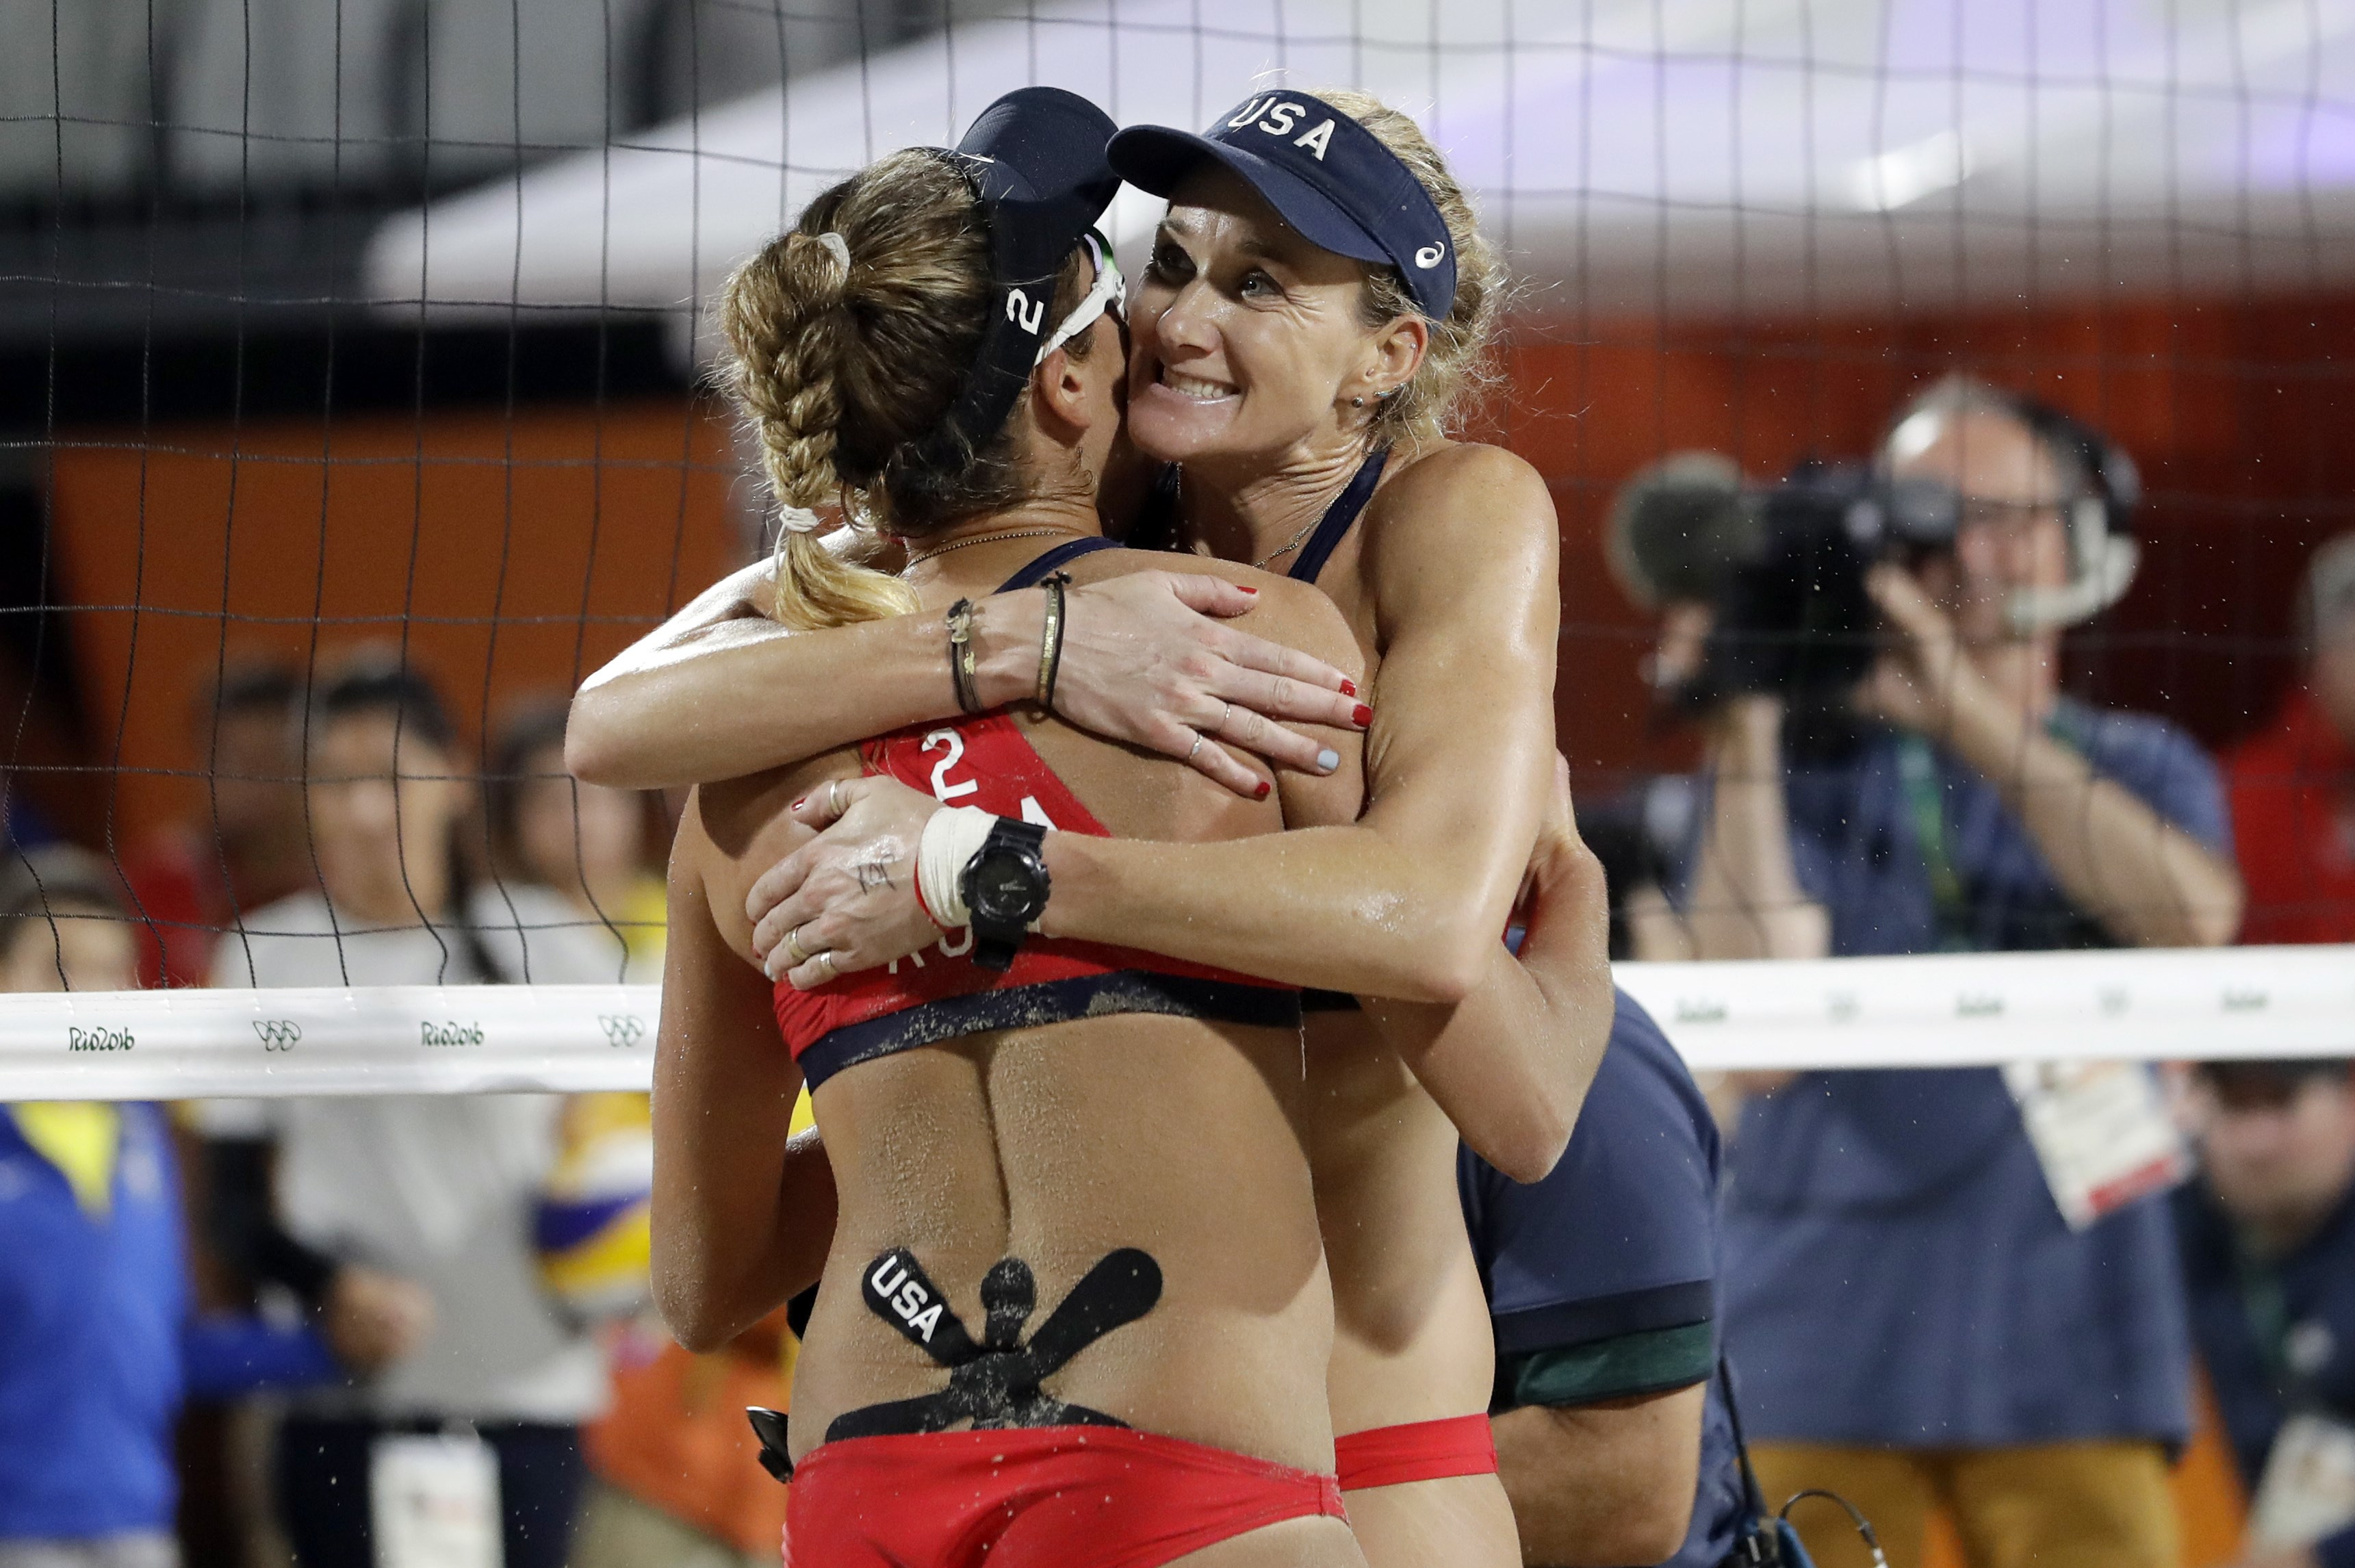 United States' Kerri Walsh Jennings, right, hugs teammate April Ross after beating Australia during a women's beach volleyball quarterfinal match at the 2016 Summer Olympics in Rio de Janeiro, Brazil, Monday, Aug. 15, 2016. (AP Photo/Marcio Jose Sanchez)